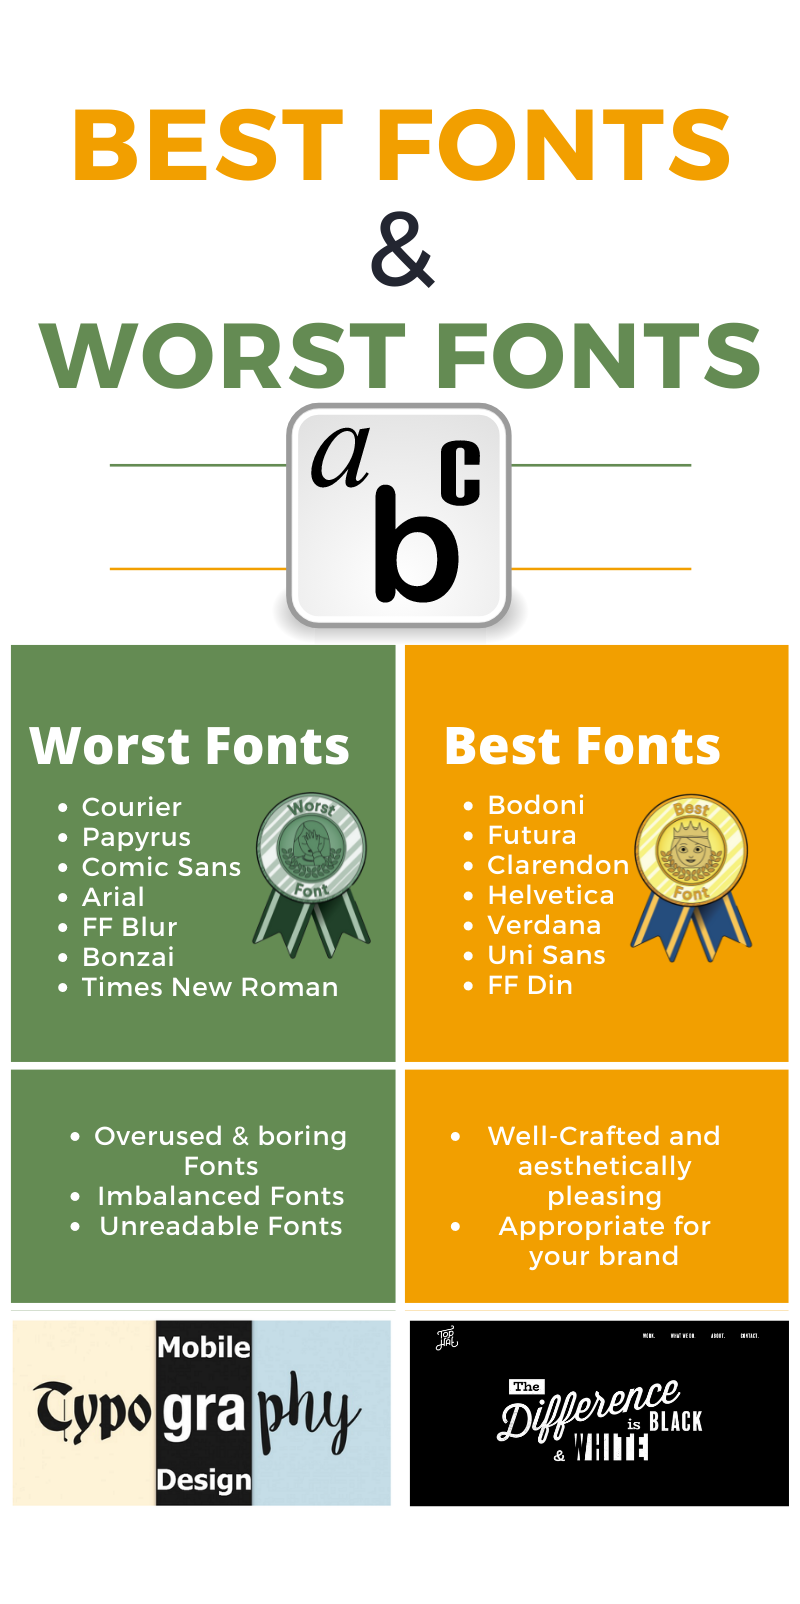 Typography for website use